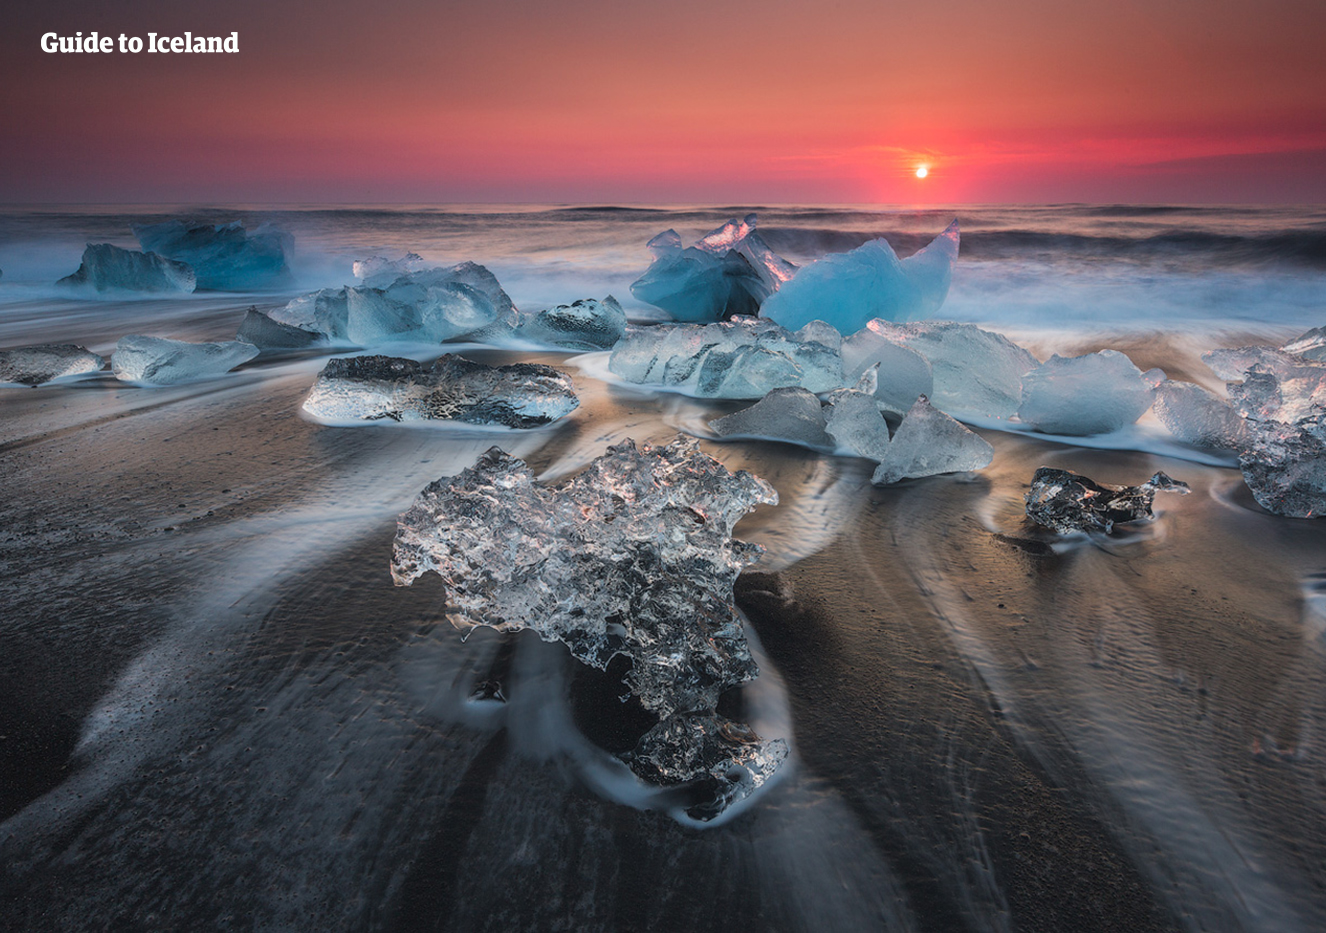 Diamond Beach is a photographer's paradise found at the end of the South Coast of Iceland.